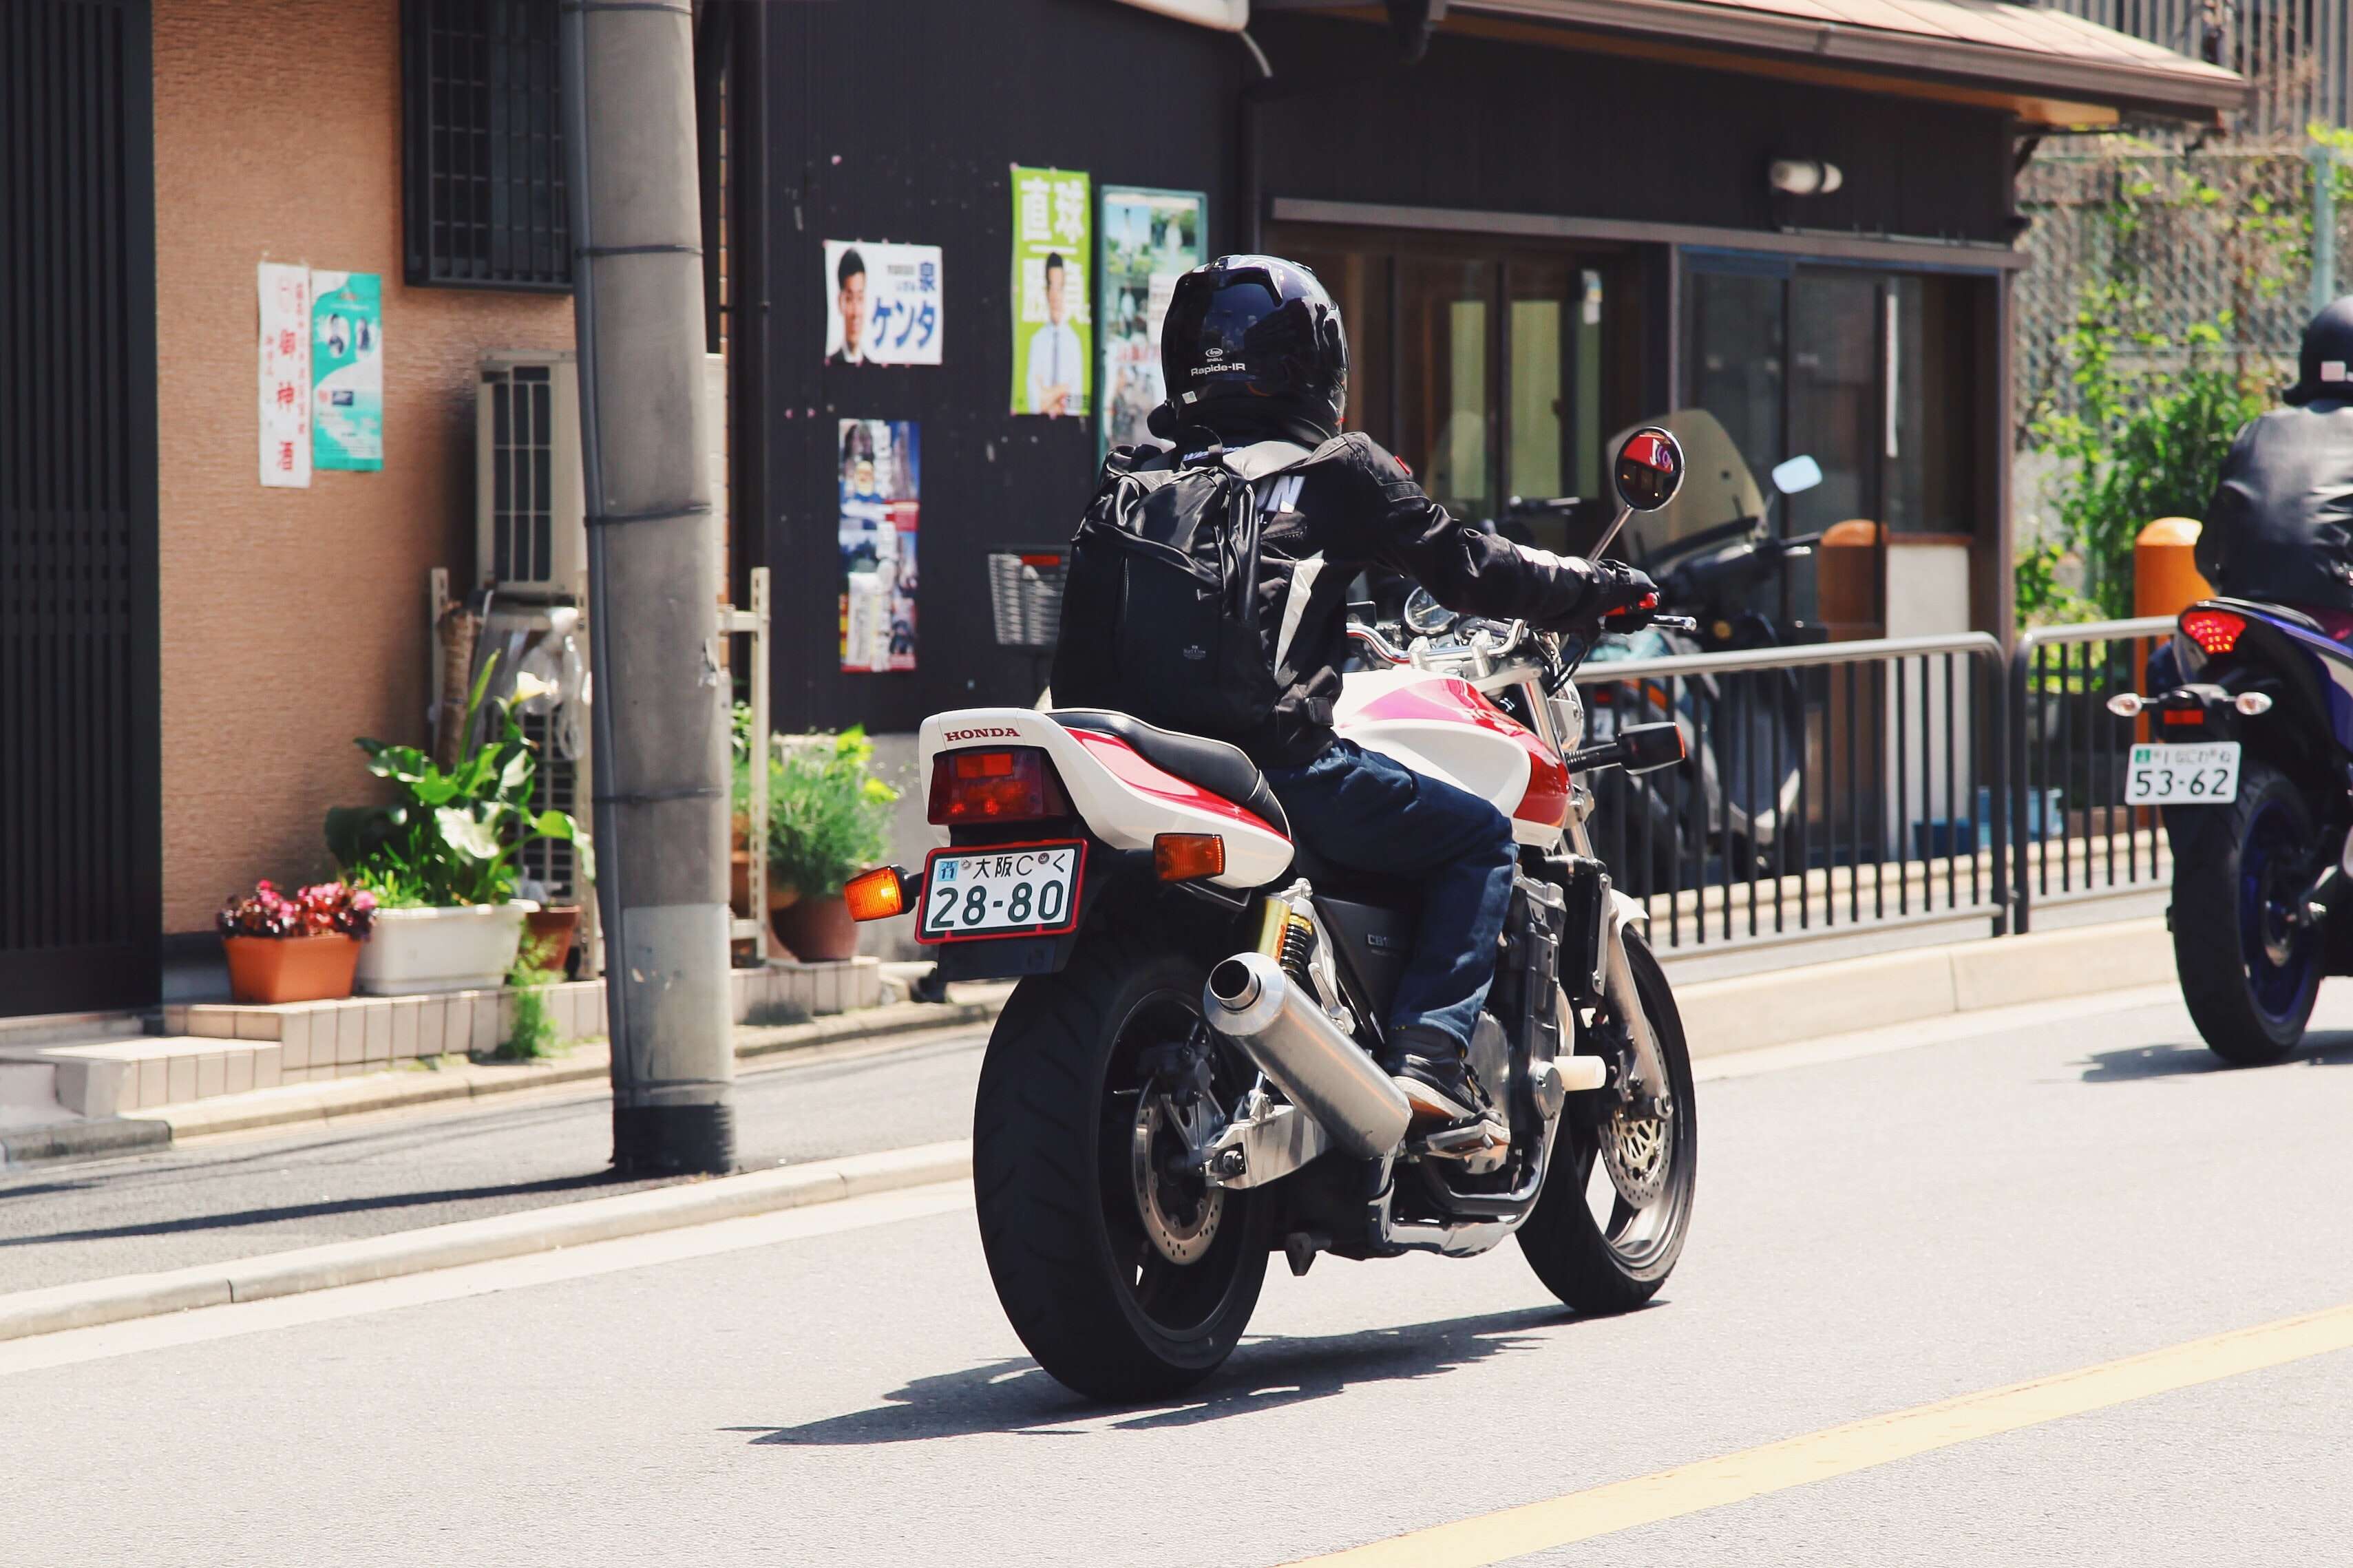 A biker in dark clothing with a black backpack driving a motorcycle through a Japanese street with posters in the background